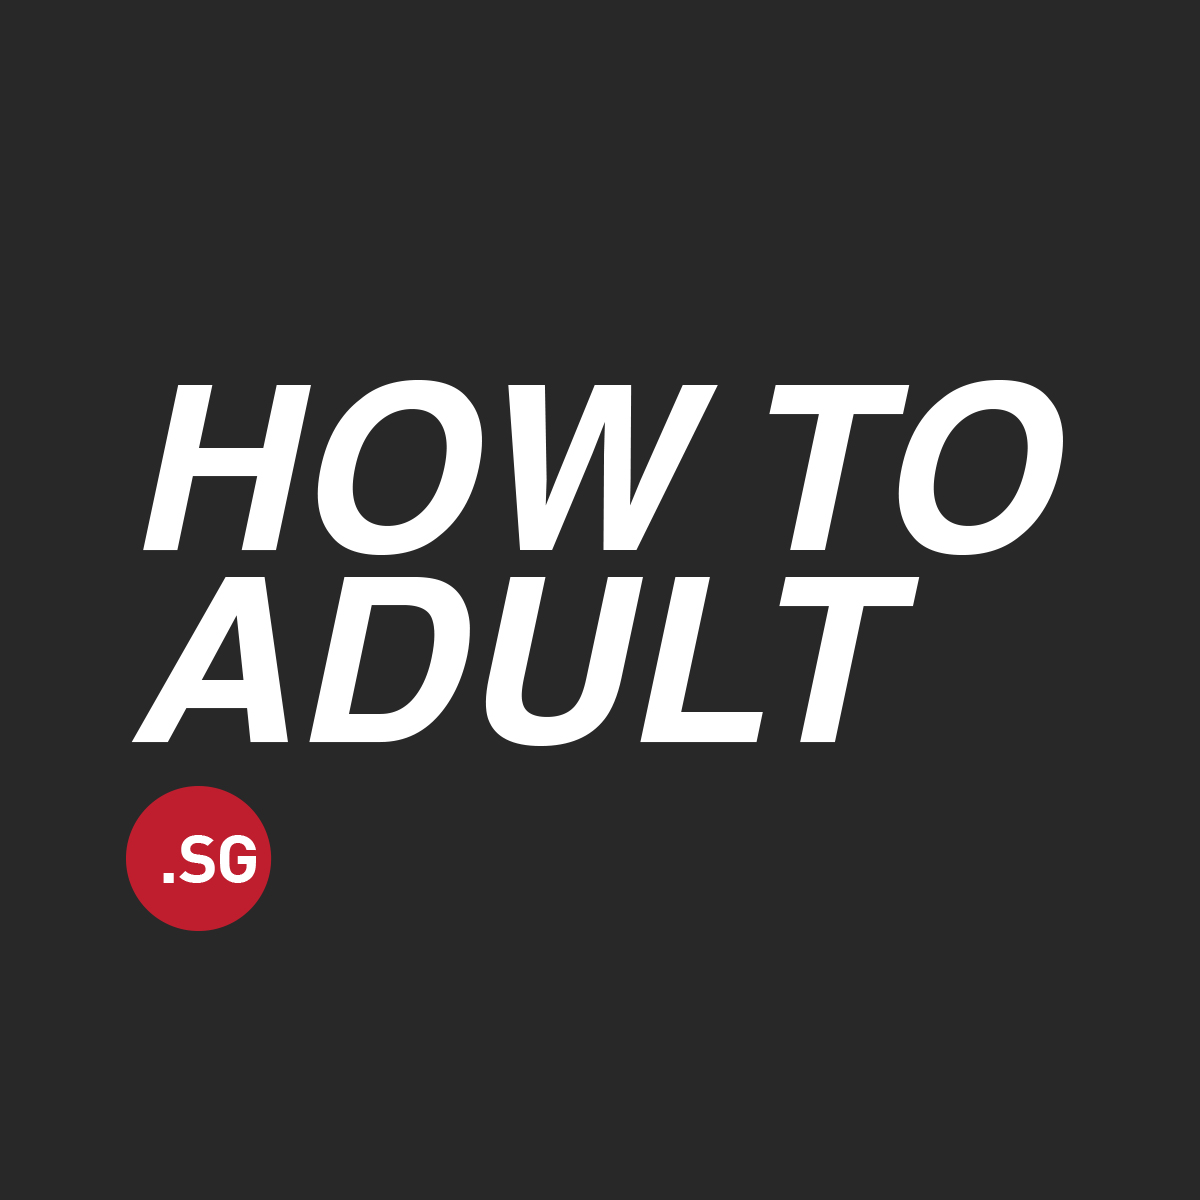 How-To: Place a 4D Bet - How To Adult